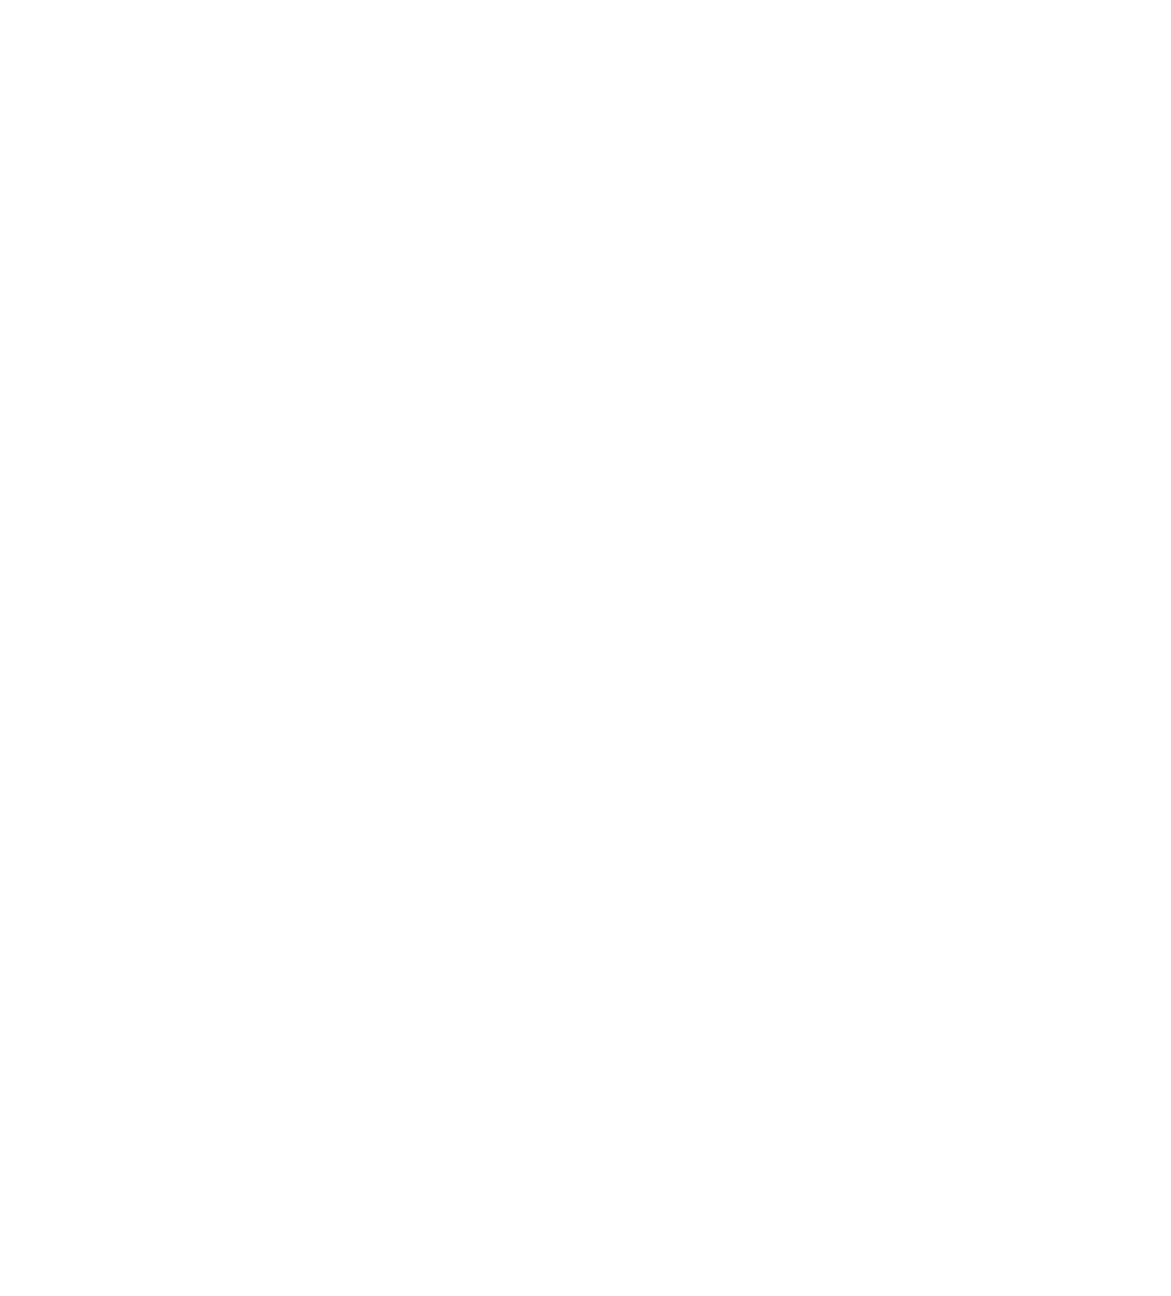 Coding for Disaster Relief